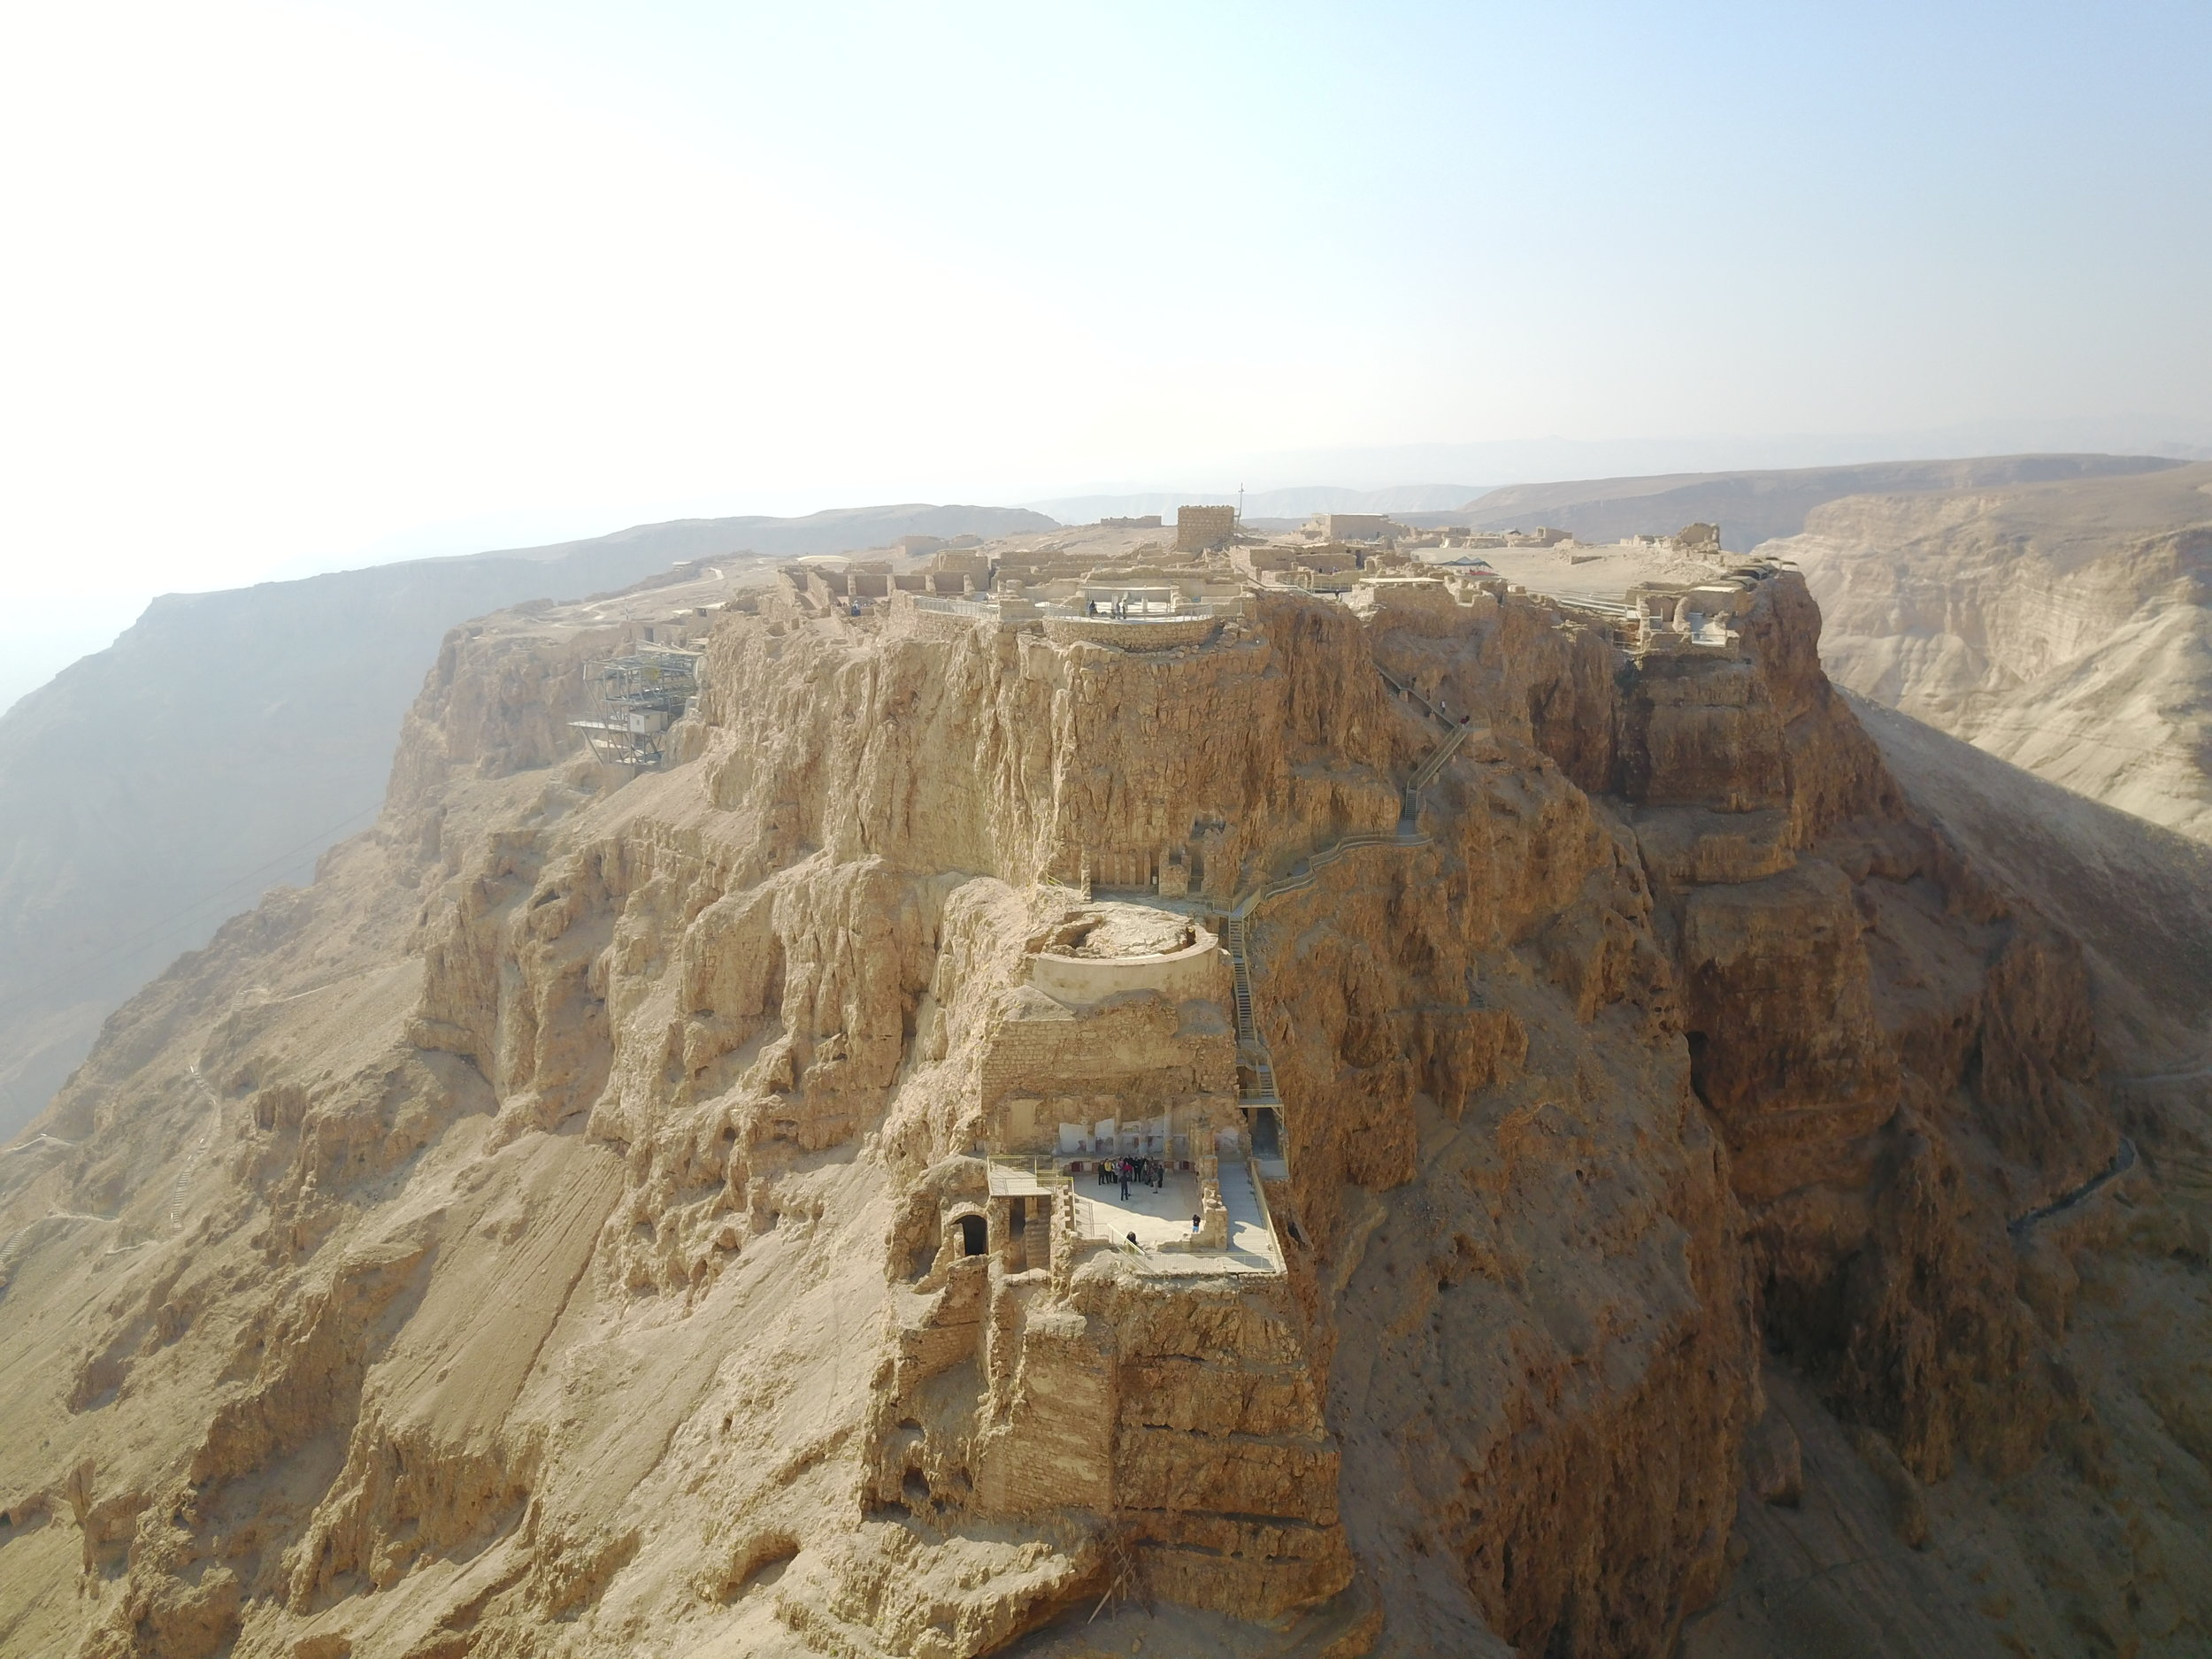 MASADA, EN GEDI and QUMRAN